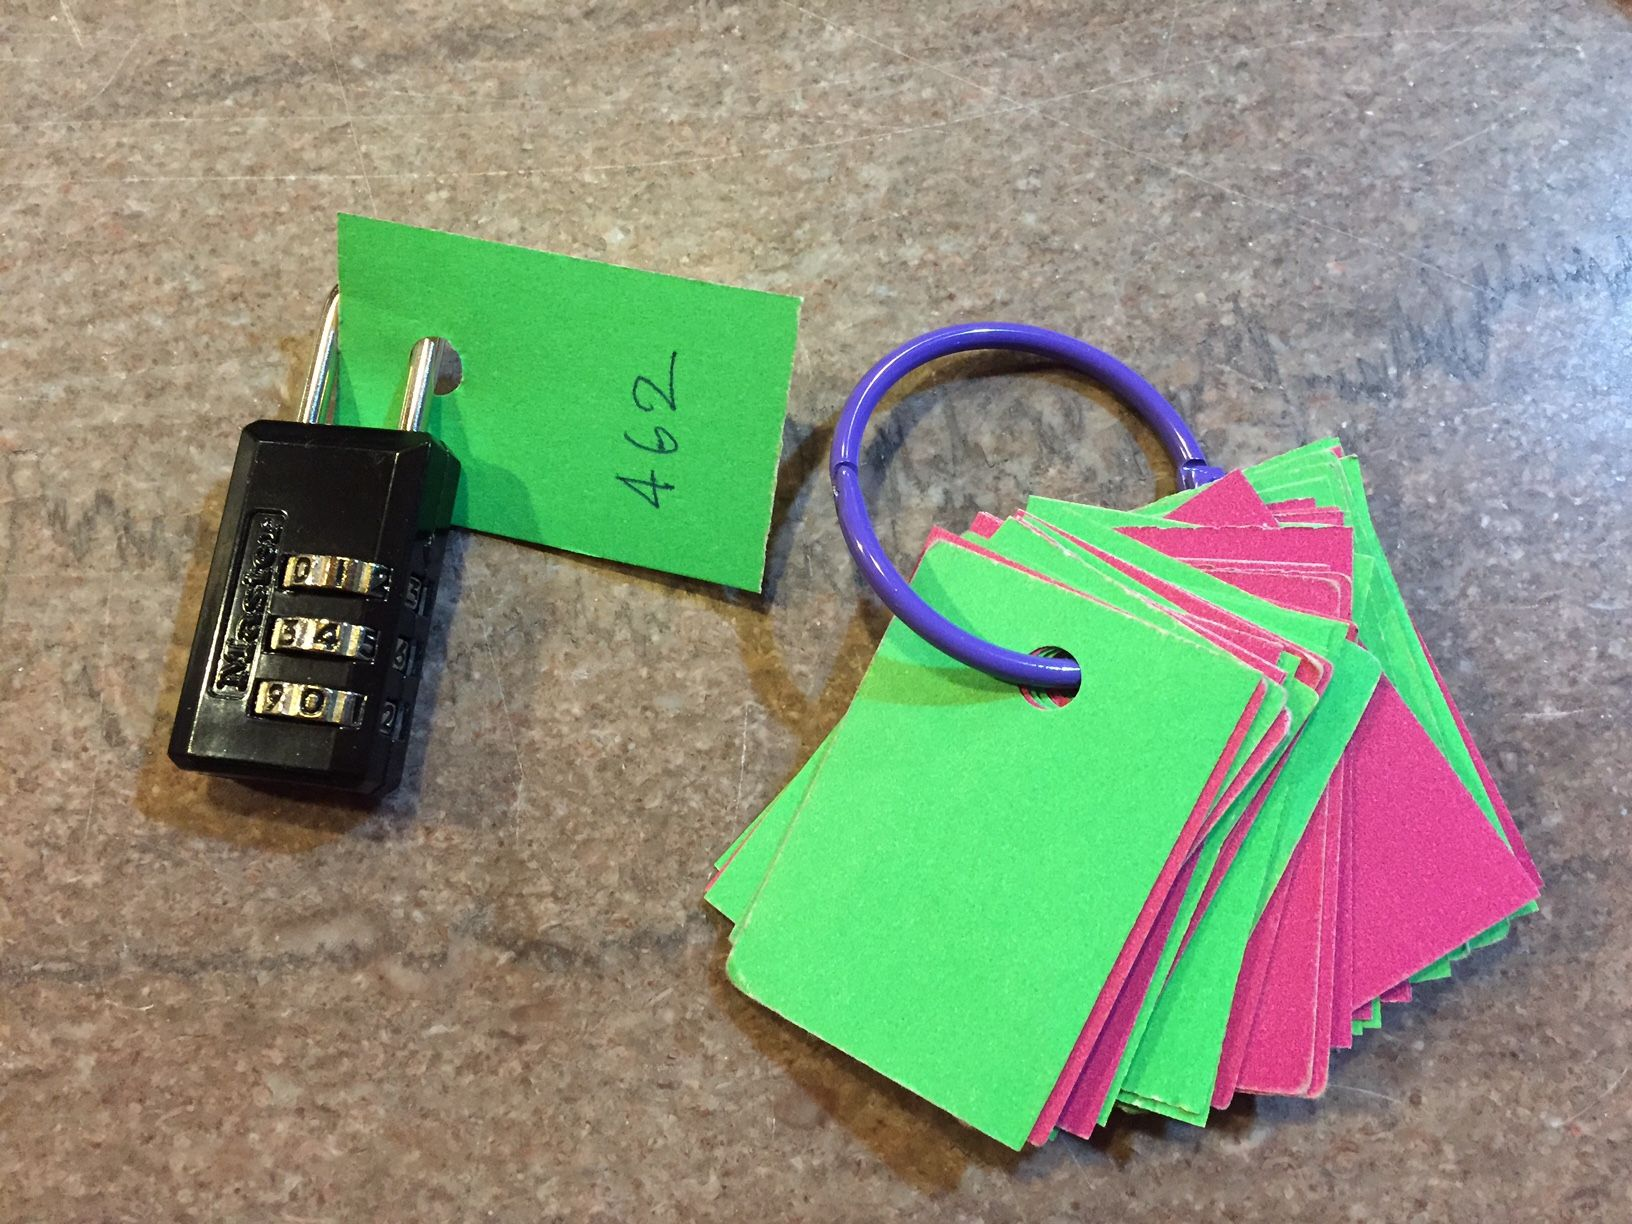 Ring of punched cards to record current combo and slip onto the shank of your lock as you pack up.